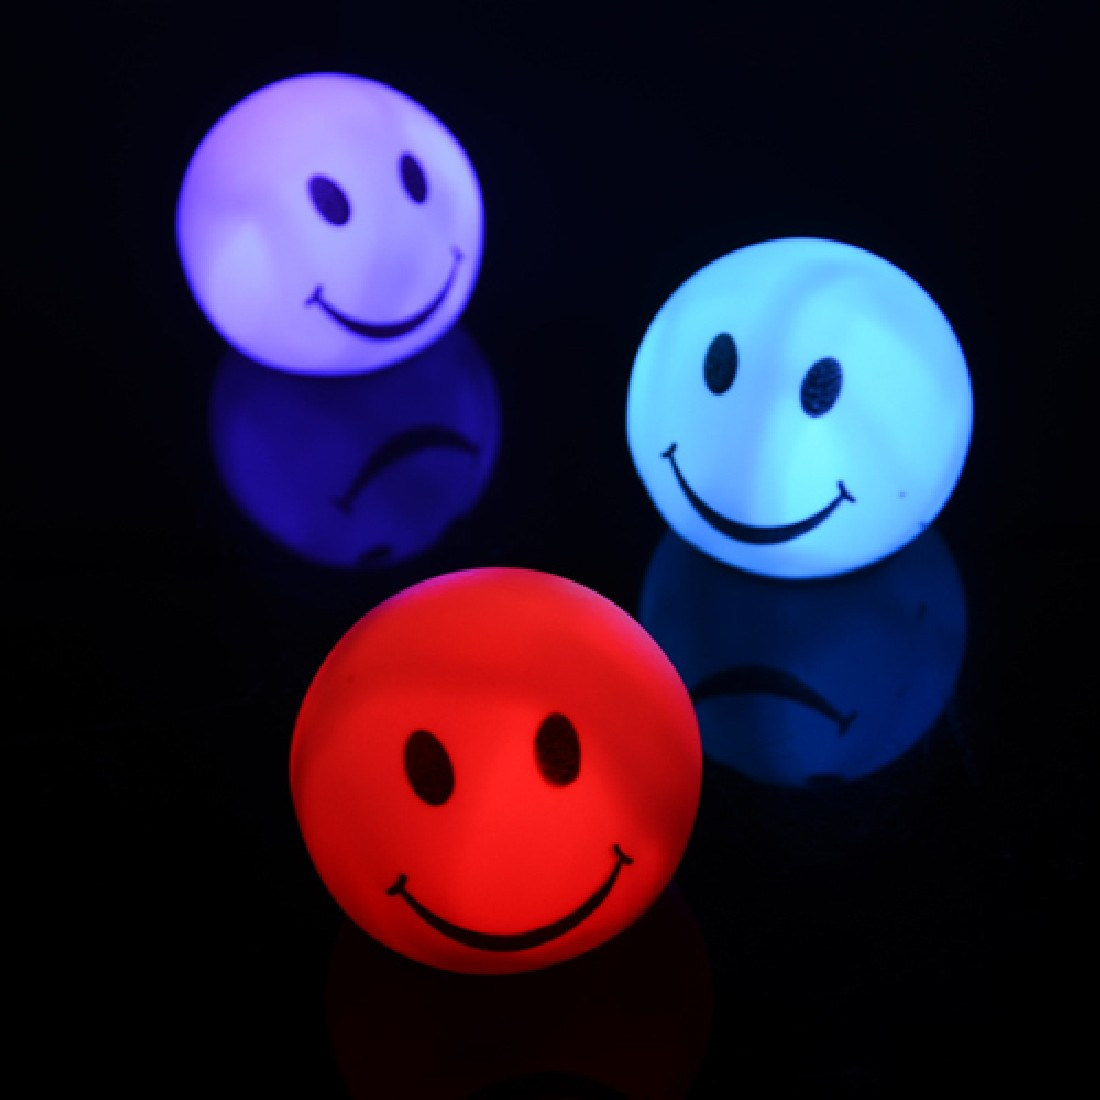 Colorful Changing LED Smiling Face Shaped Night Light Lamp For Party Bedroom Decor Wedding Christmas Gifts